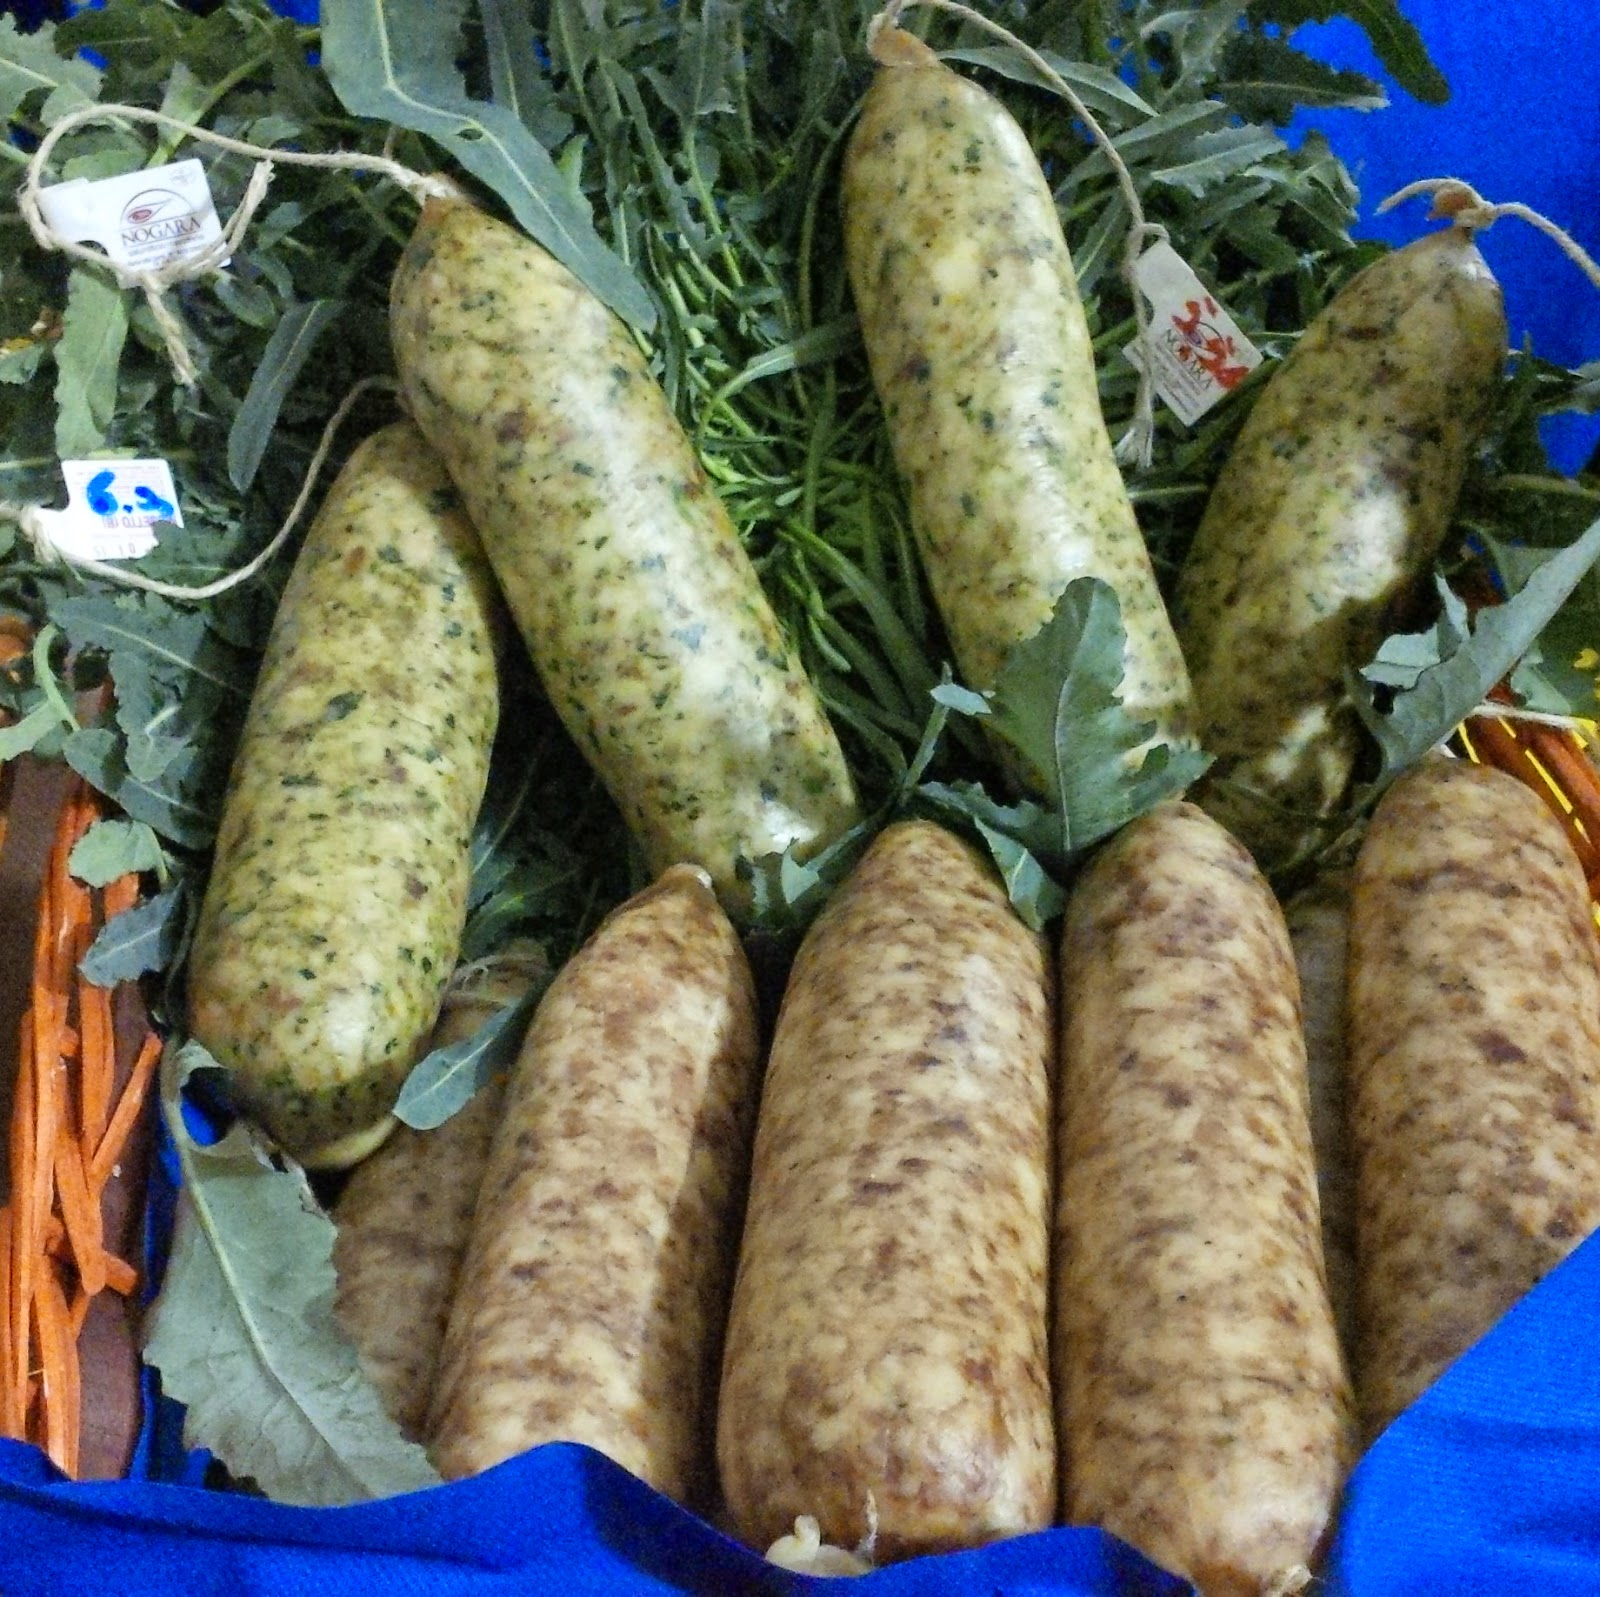 Sausages made with broccolo fiolaro at the food festival in Creazzo